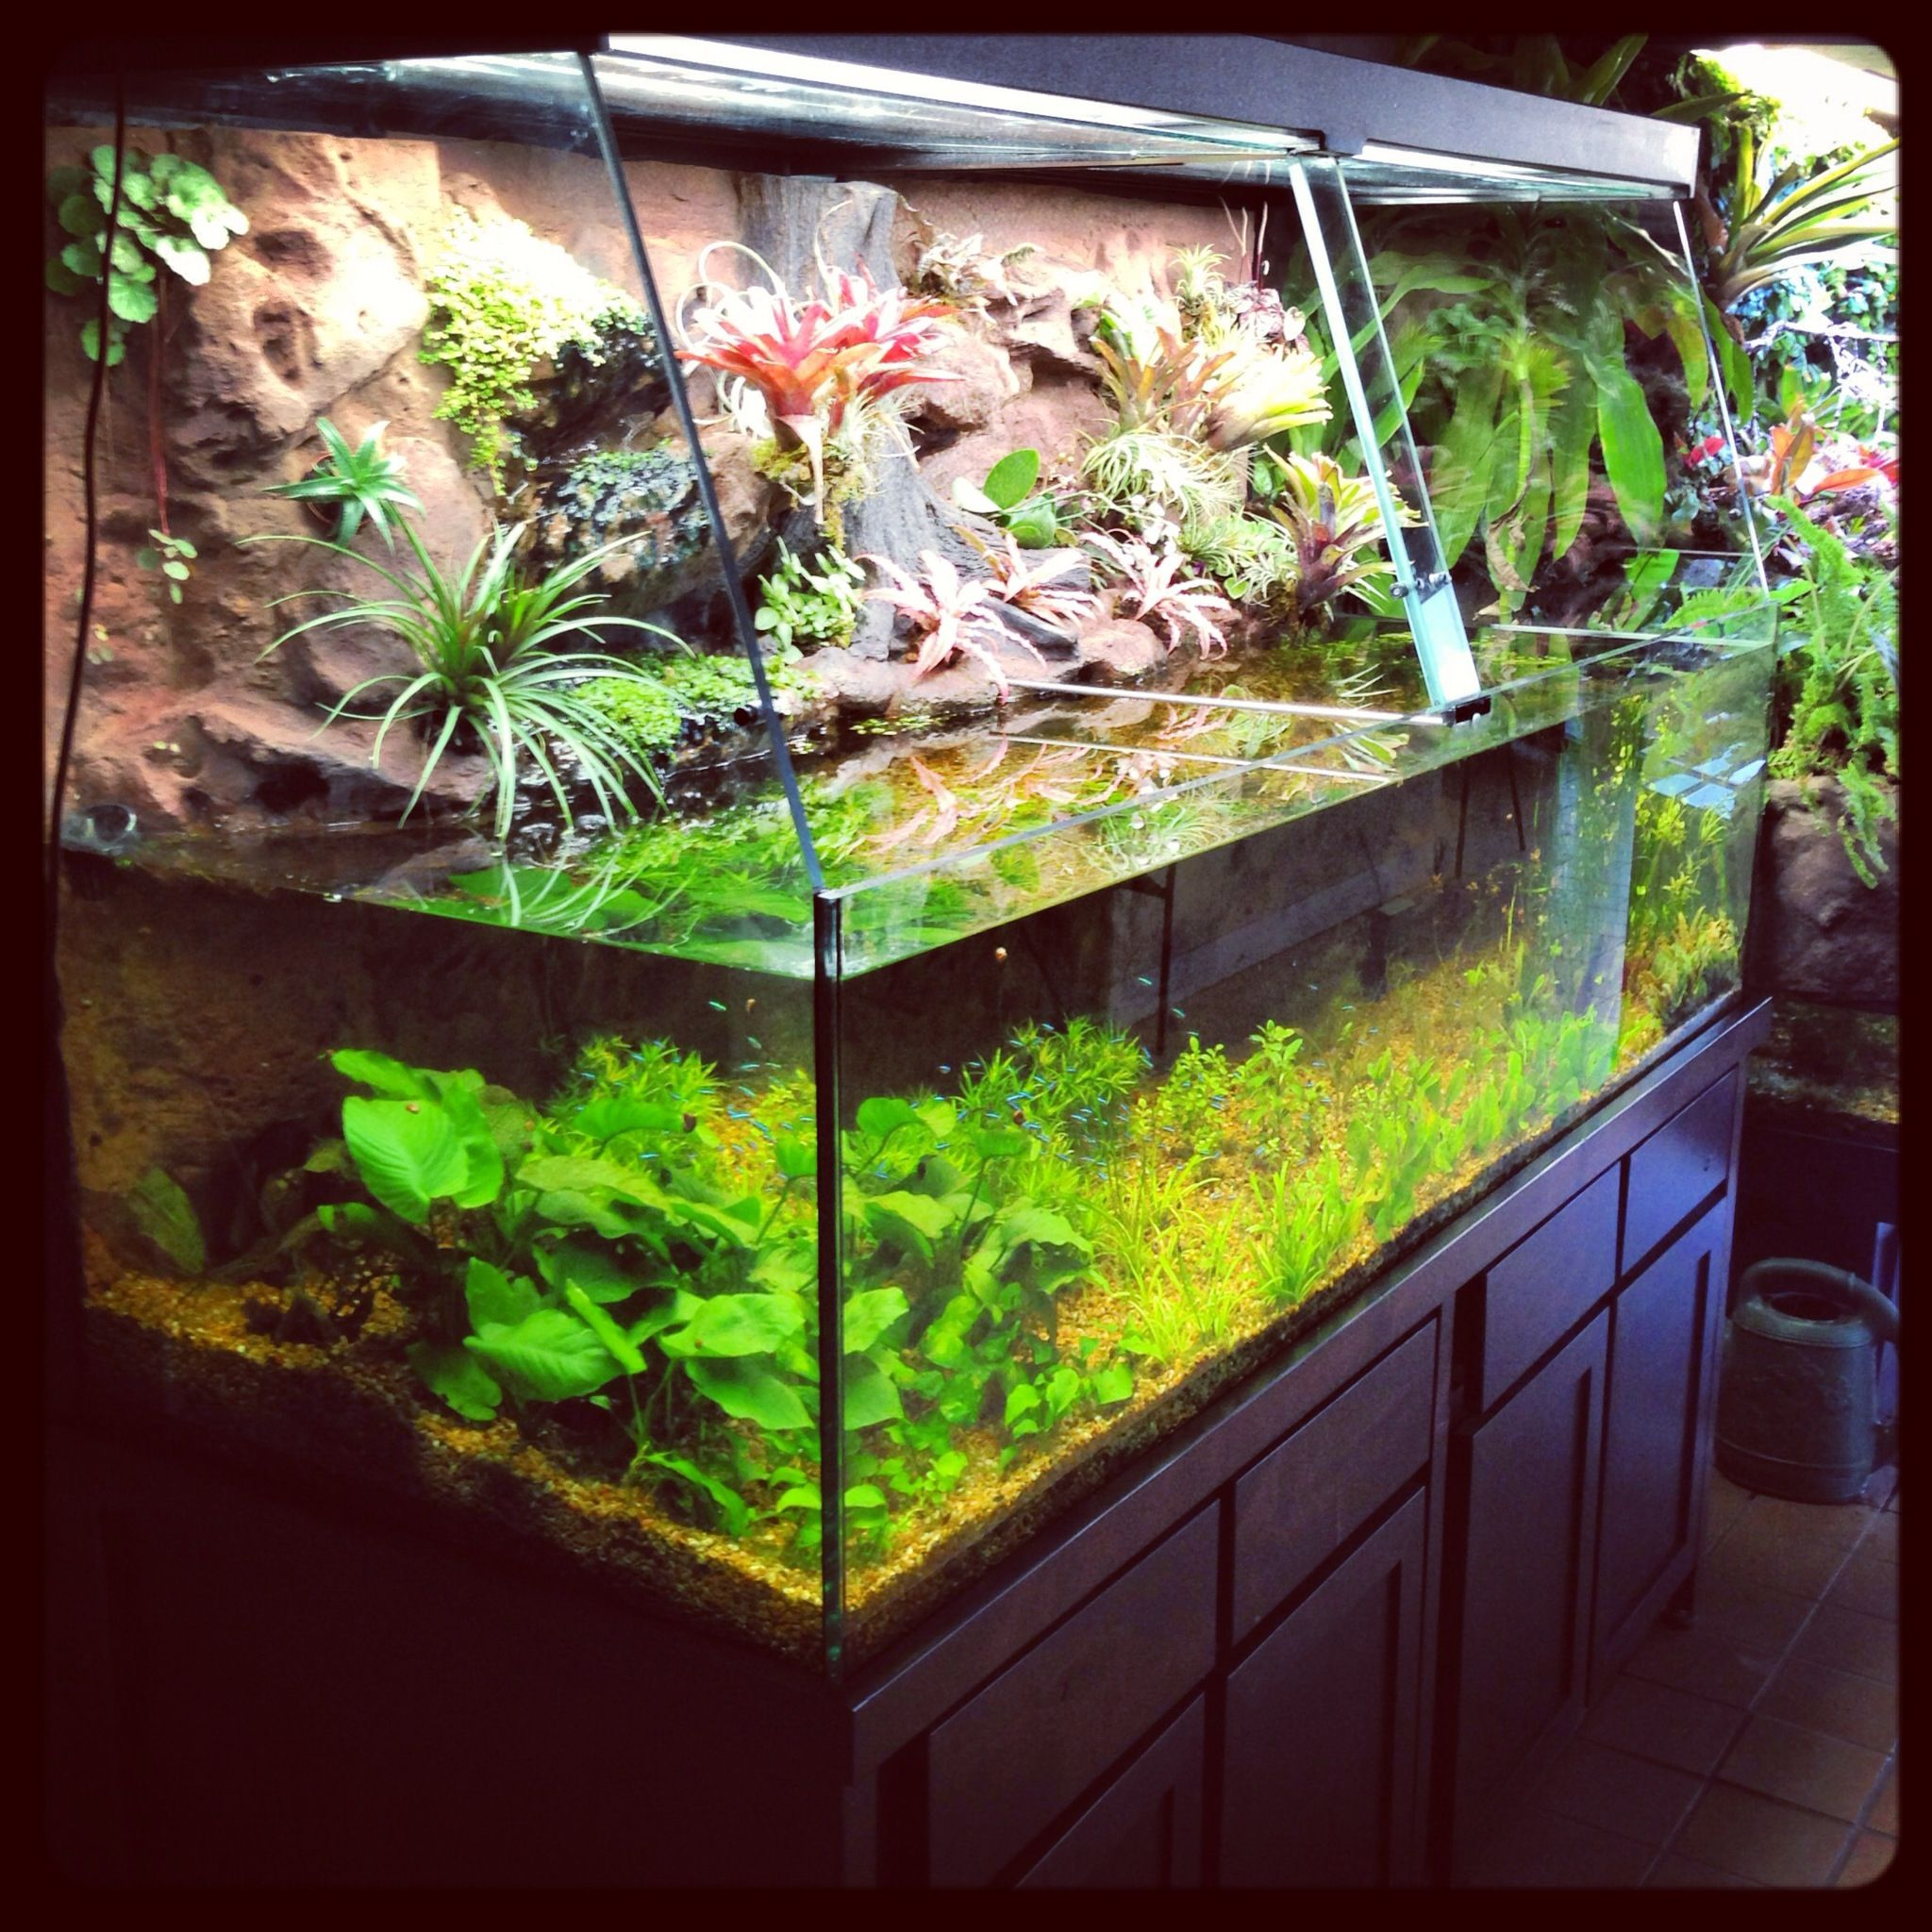 Aquaplantarium a tropical oasis aquarium paludarium for Fish tank terrarium